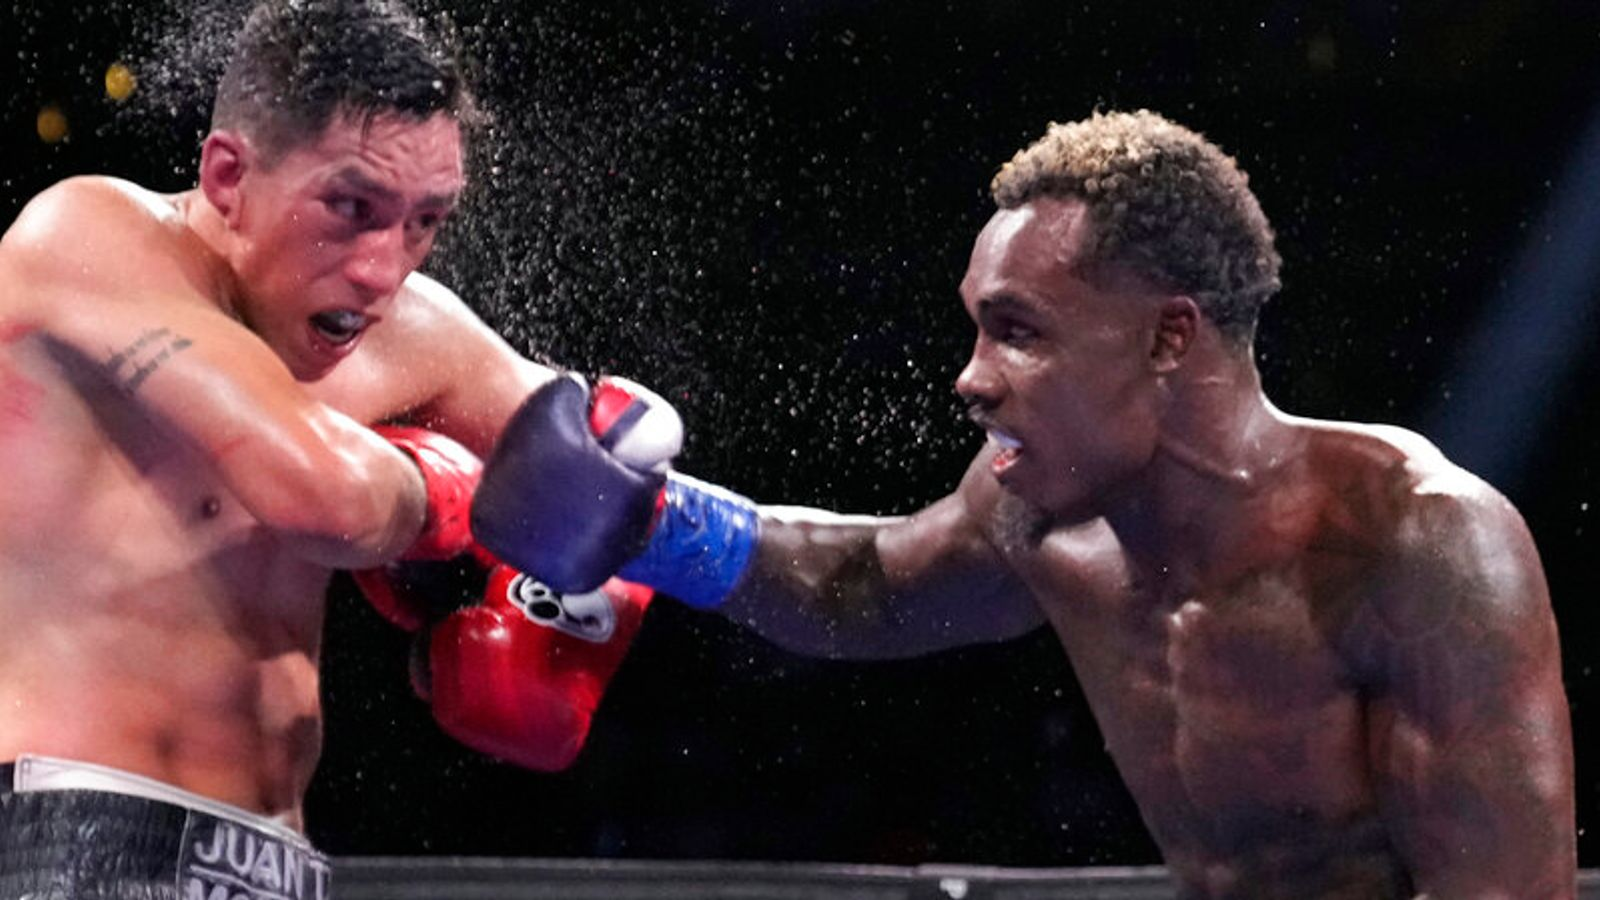 Jermall Charlo retained his WBC middleweight title against Juan Macias Montiel then called out Gennadiy Golovkin